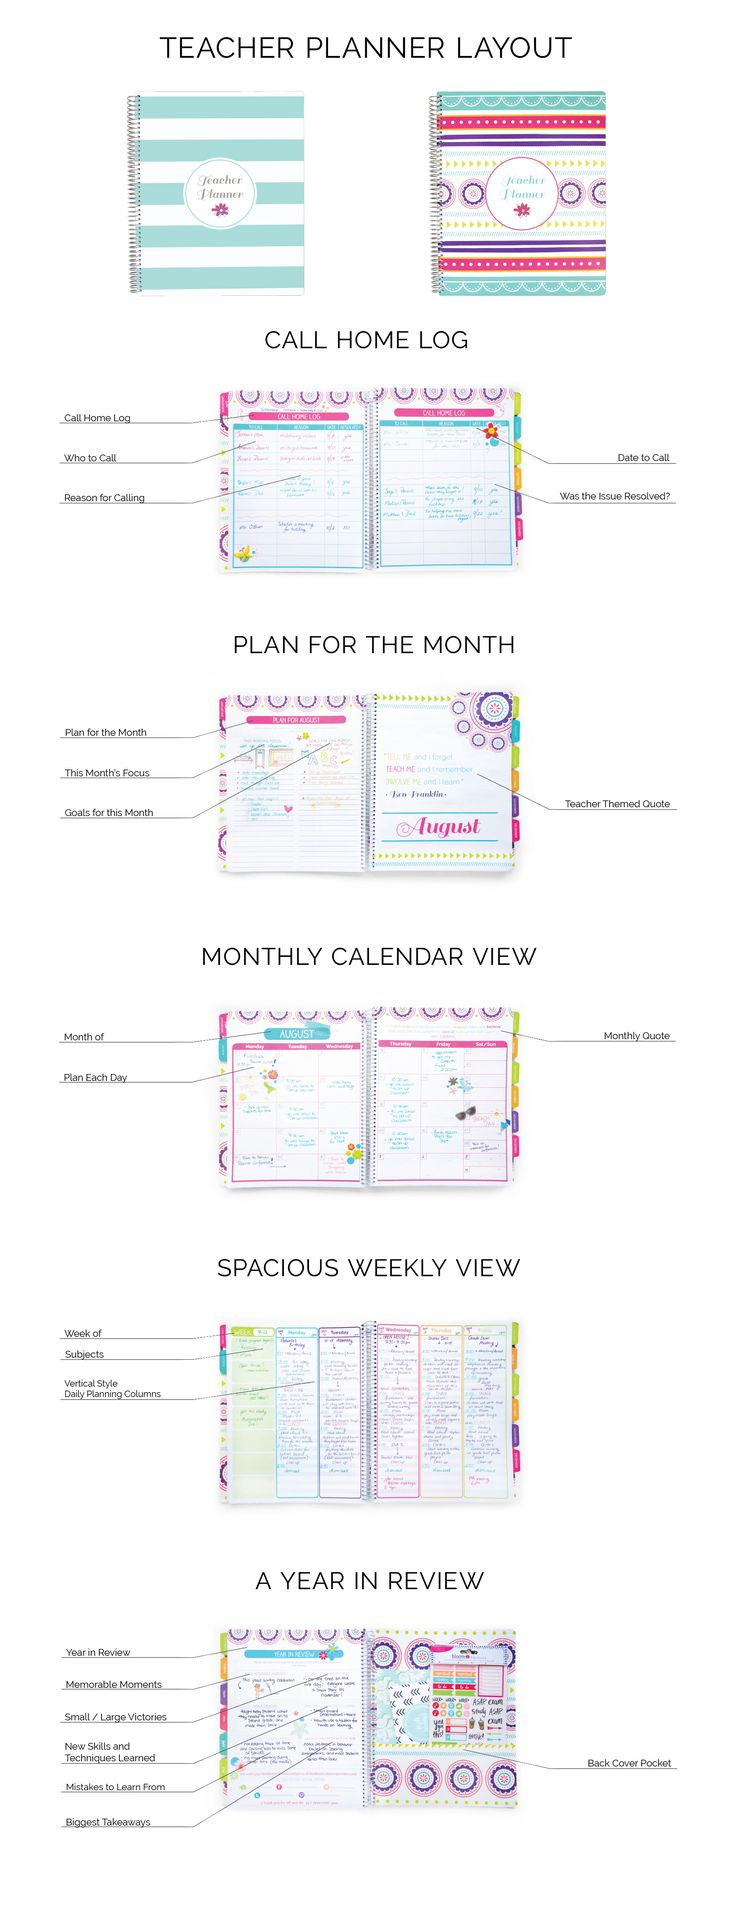 Inside Features of bloom daily planner's Teacher Planners! A perfect teacher gift for the holidays.